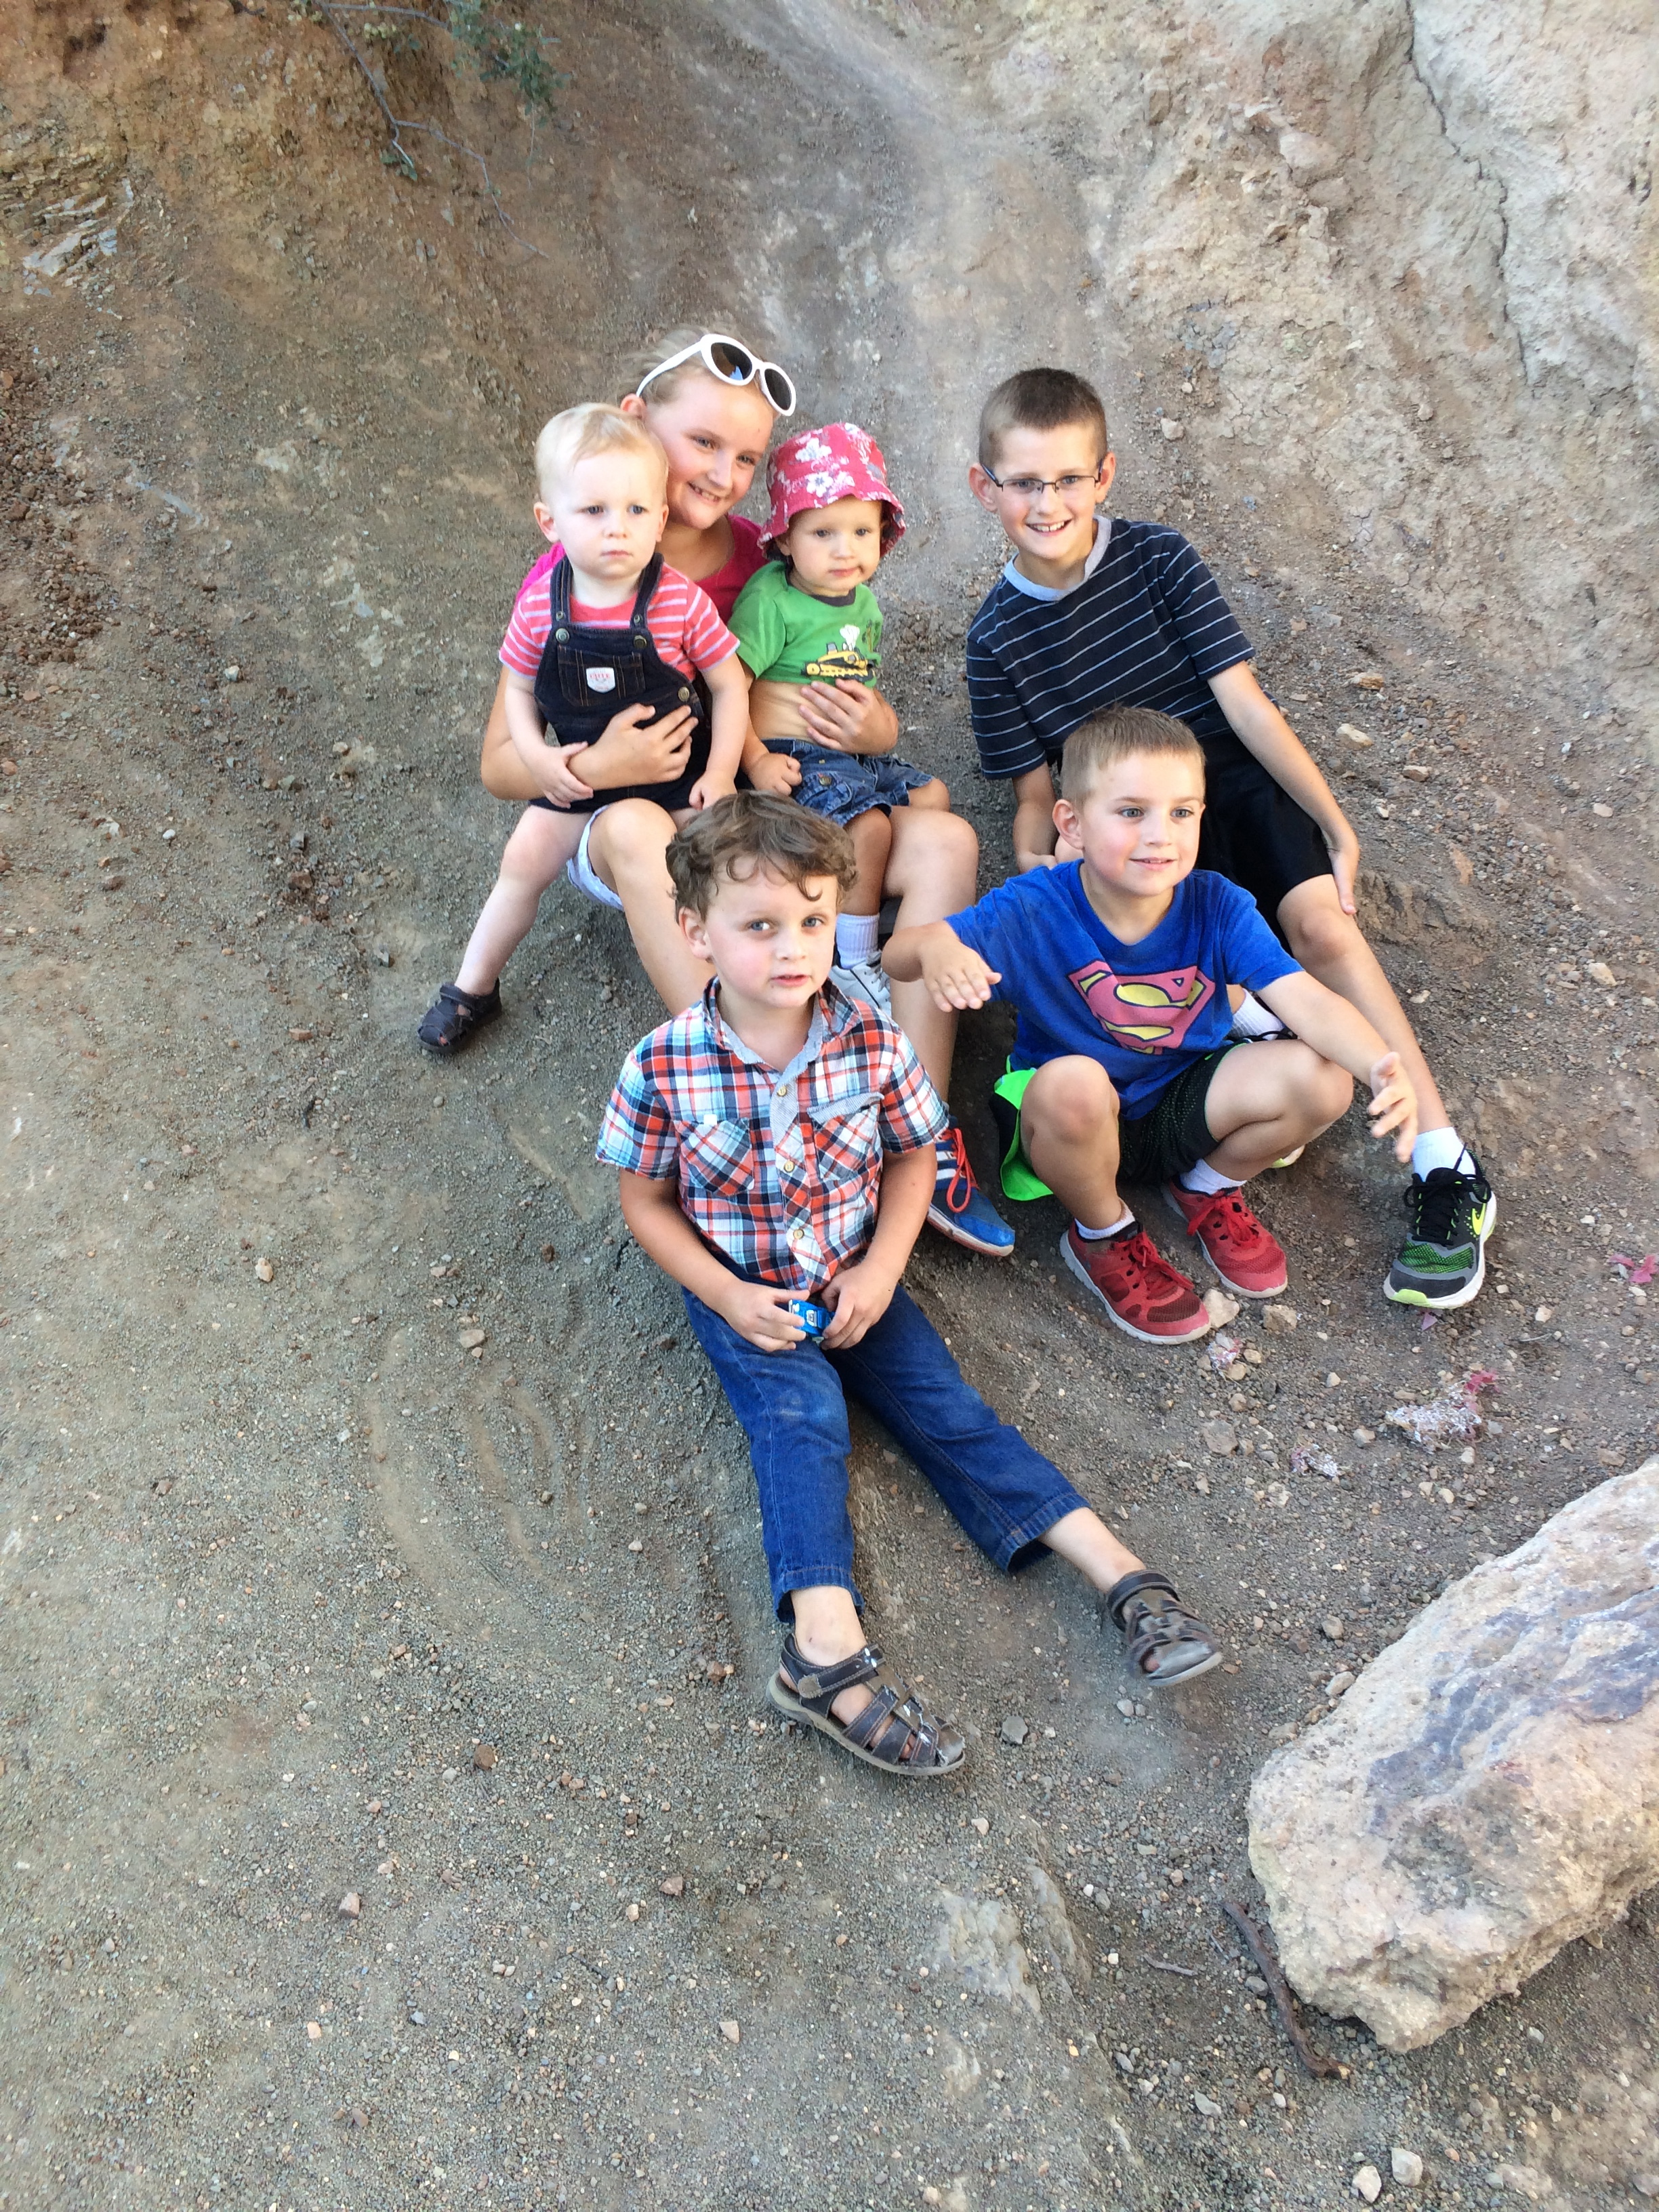 The Sprague and Brinkerhoff cousins. We went for an afternoon hike together in the hills near Ft. Collins.